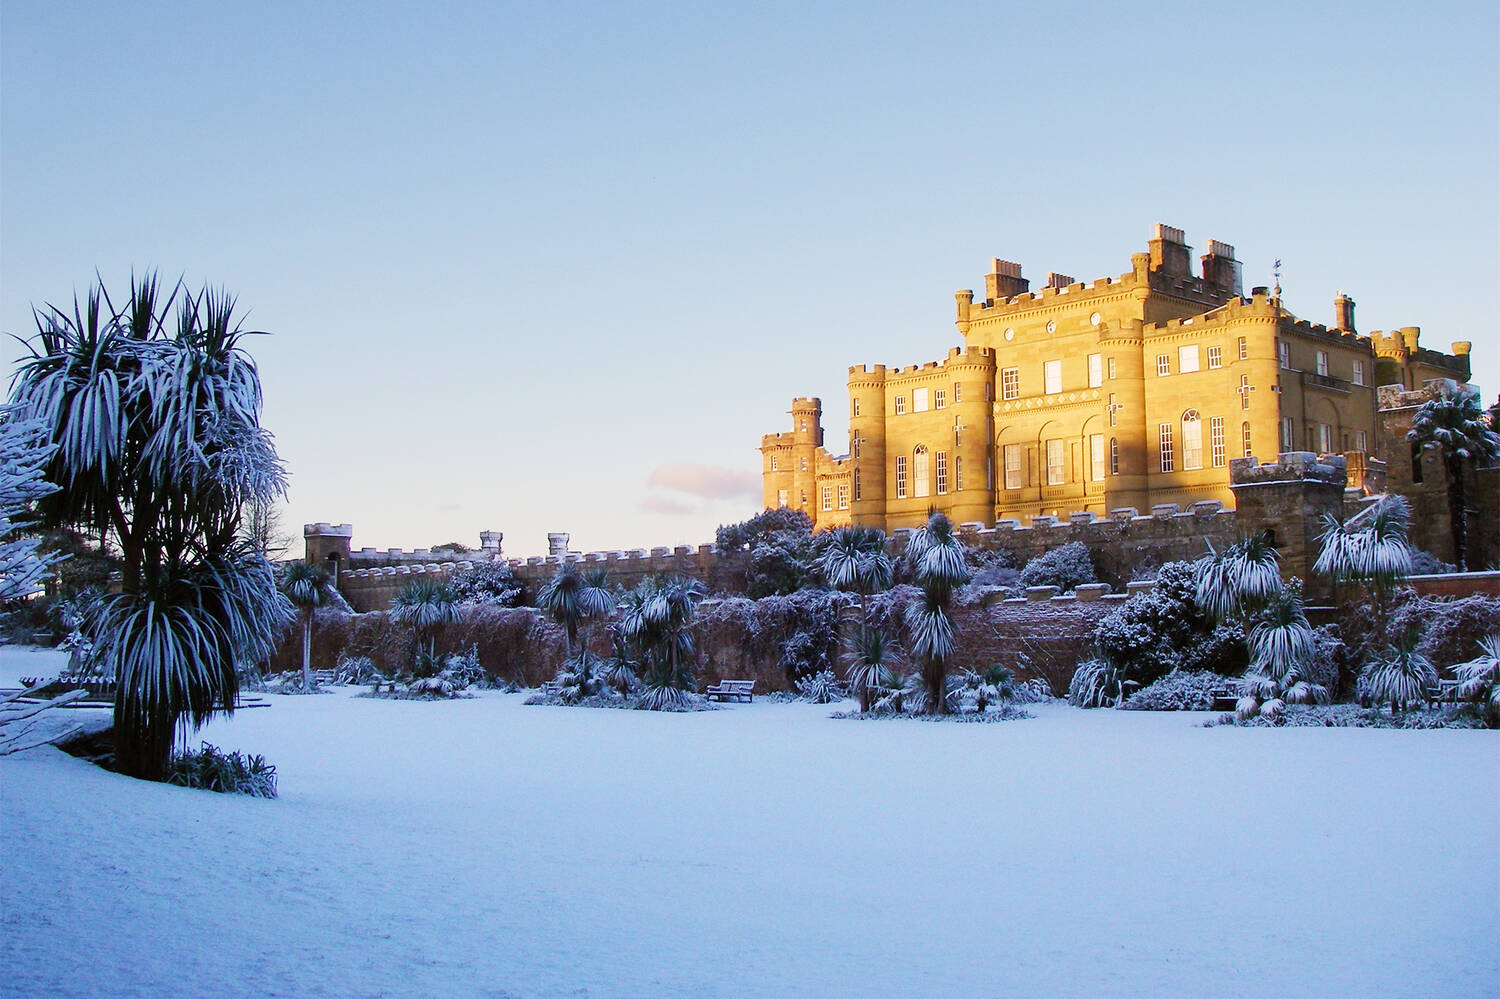 Culzean Castle & Country Park in the snow. To the right of the photo, the east face of the castle is lit by the sun. In the foreground snow covers the flat lawns of the Fountain Court, surrounded by snow-covered palm trees and benches.